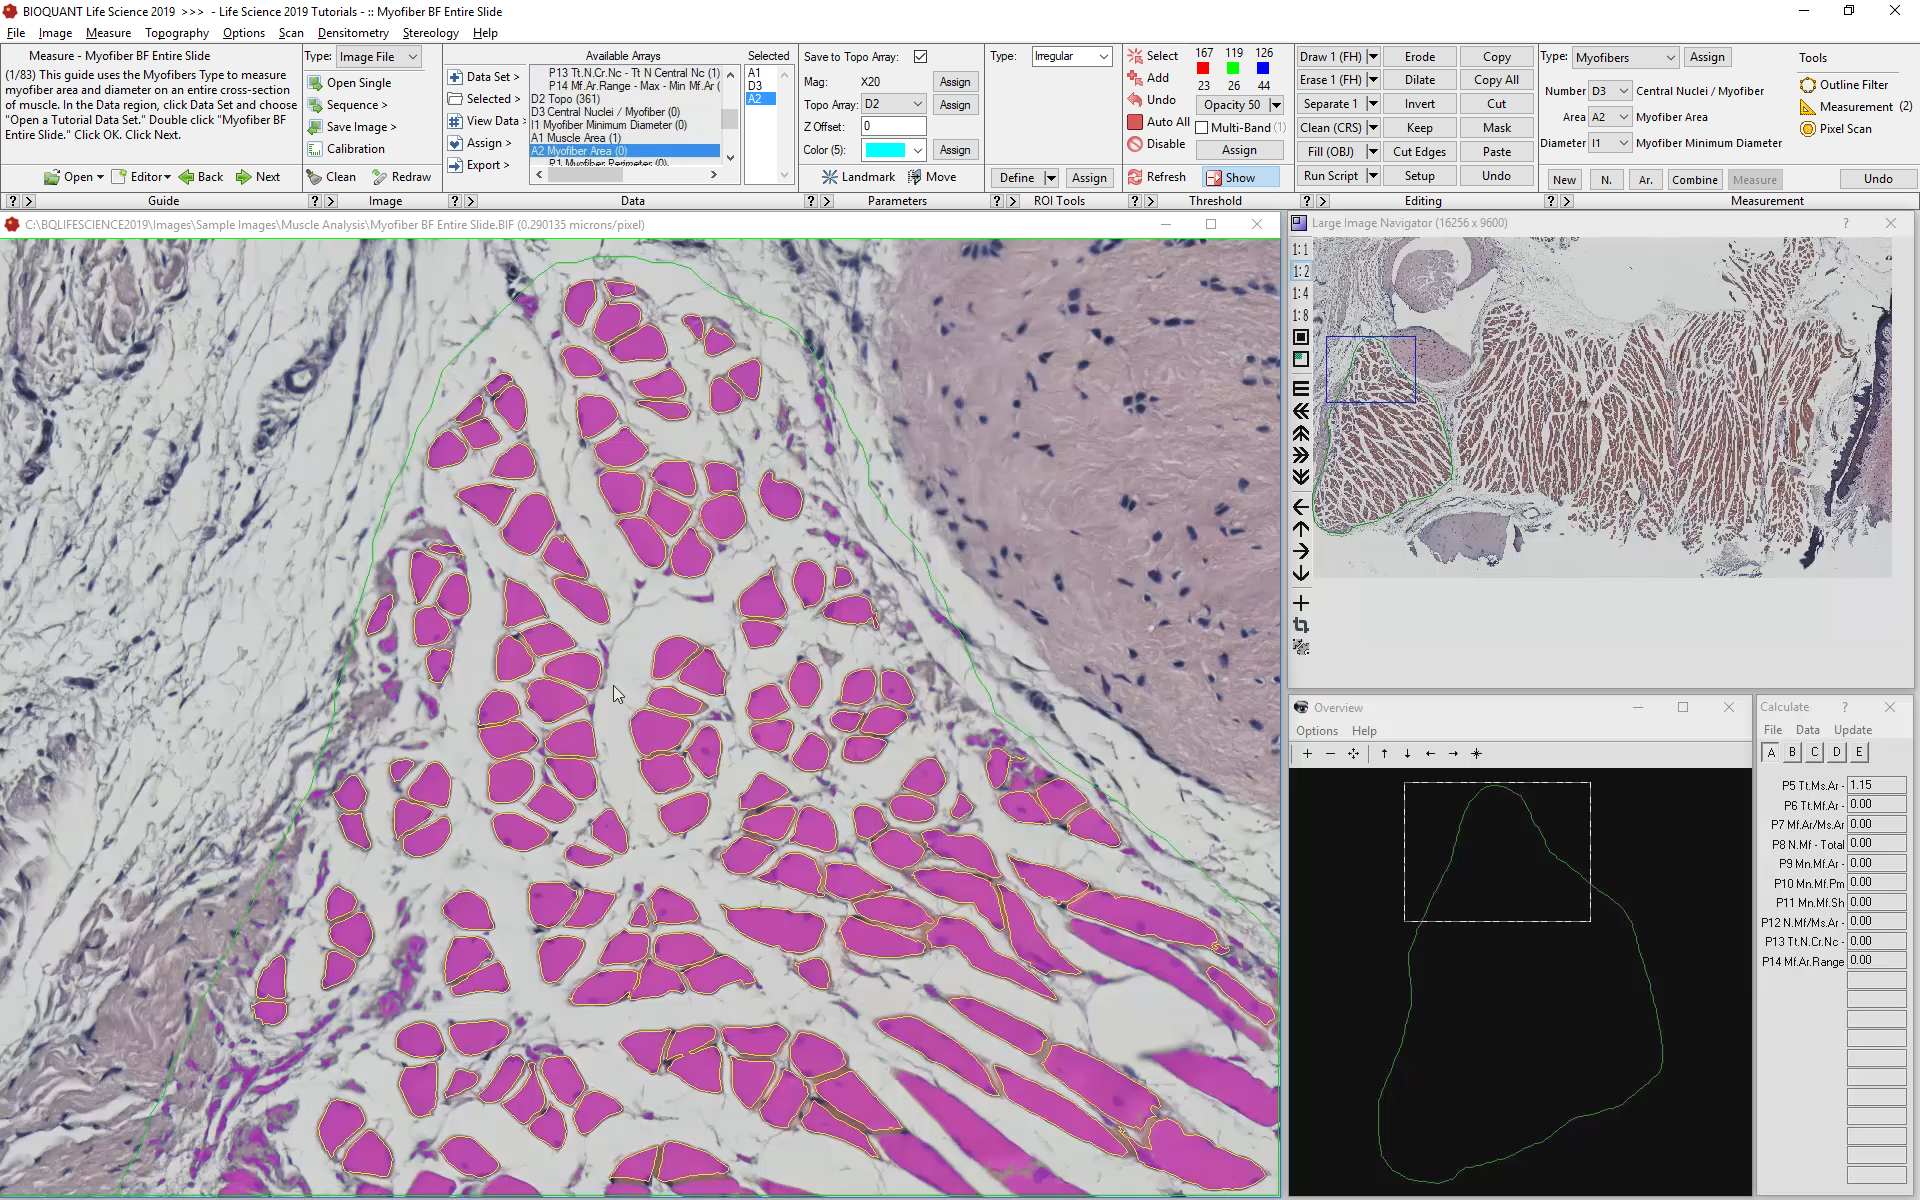 Use Specific Staining to Identify Cells and Nuclei